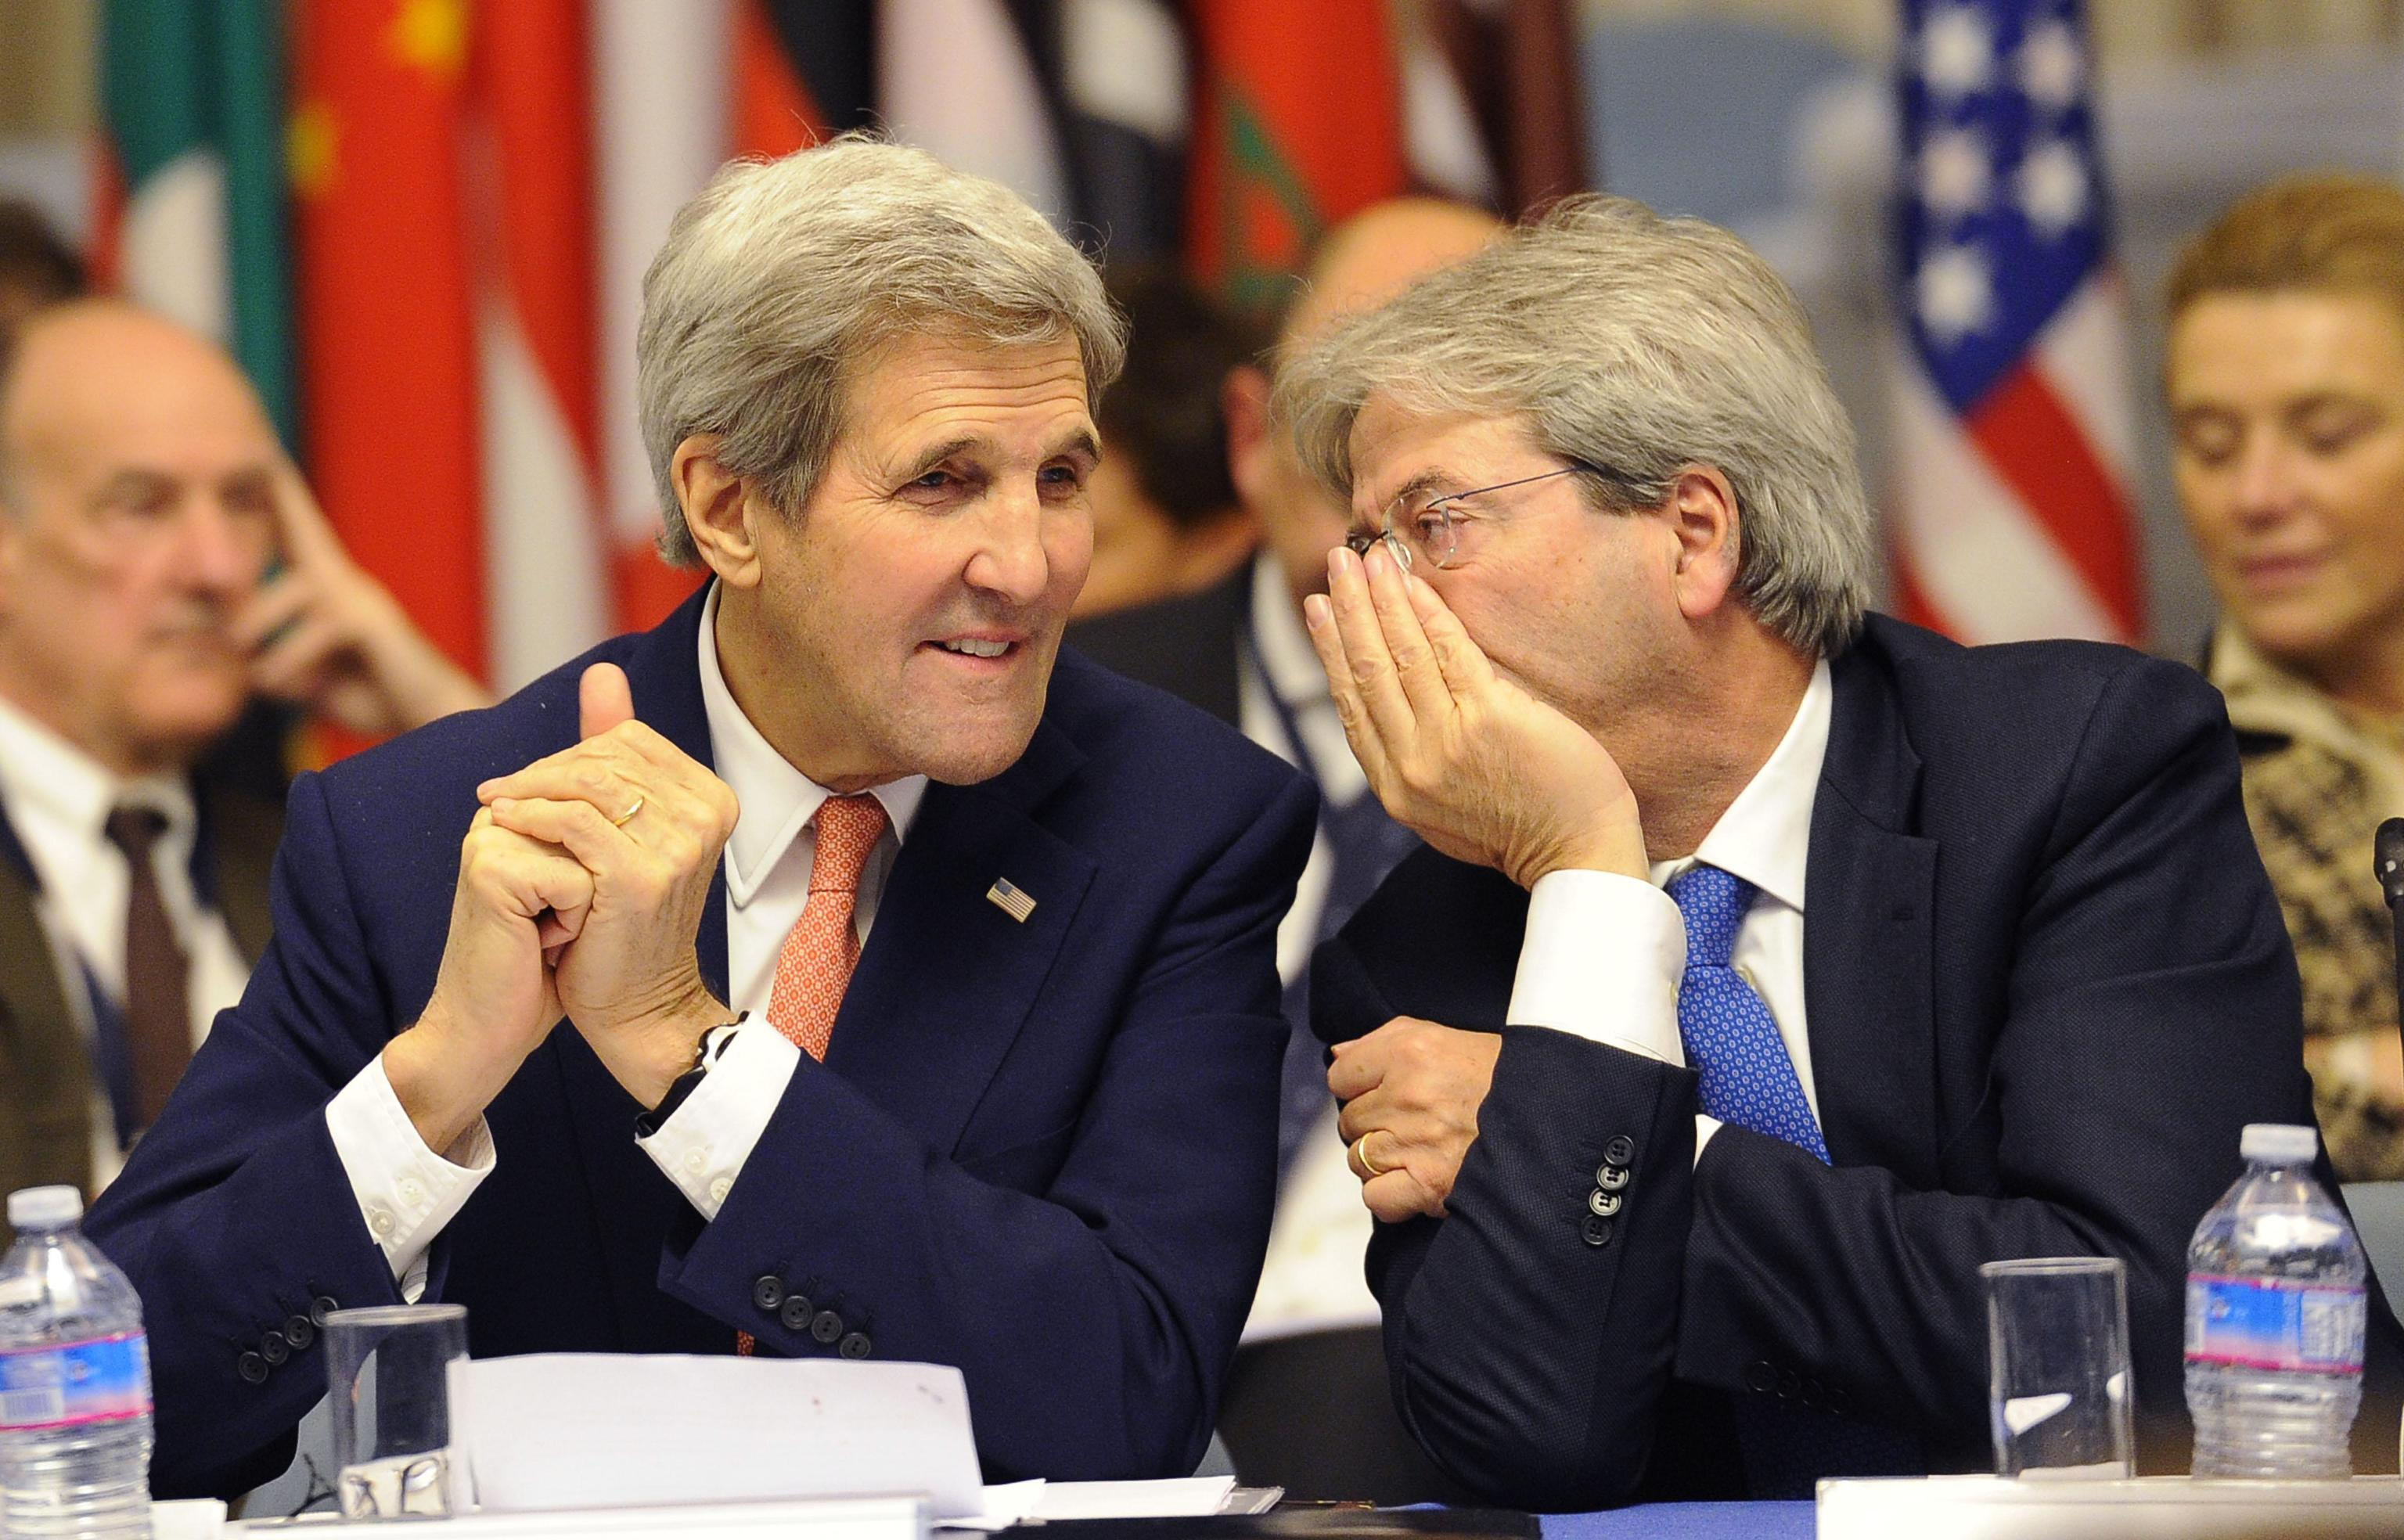 Italian Foreign minister Paolo Gentiloni (R) and US Secretary John Kerry (L) during the International Conference on Libya